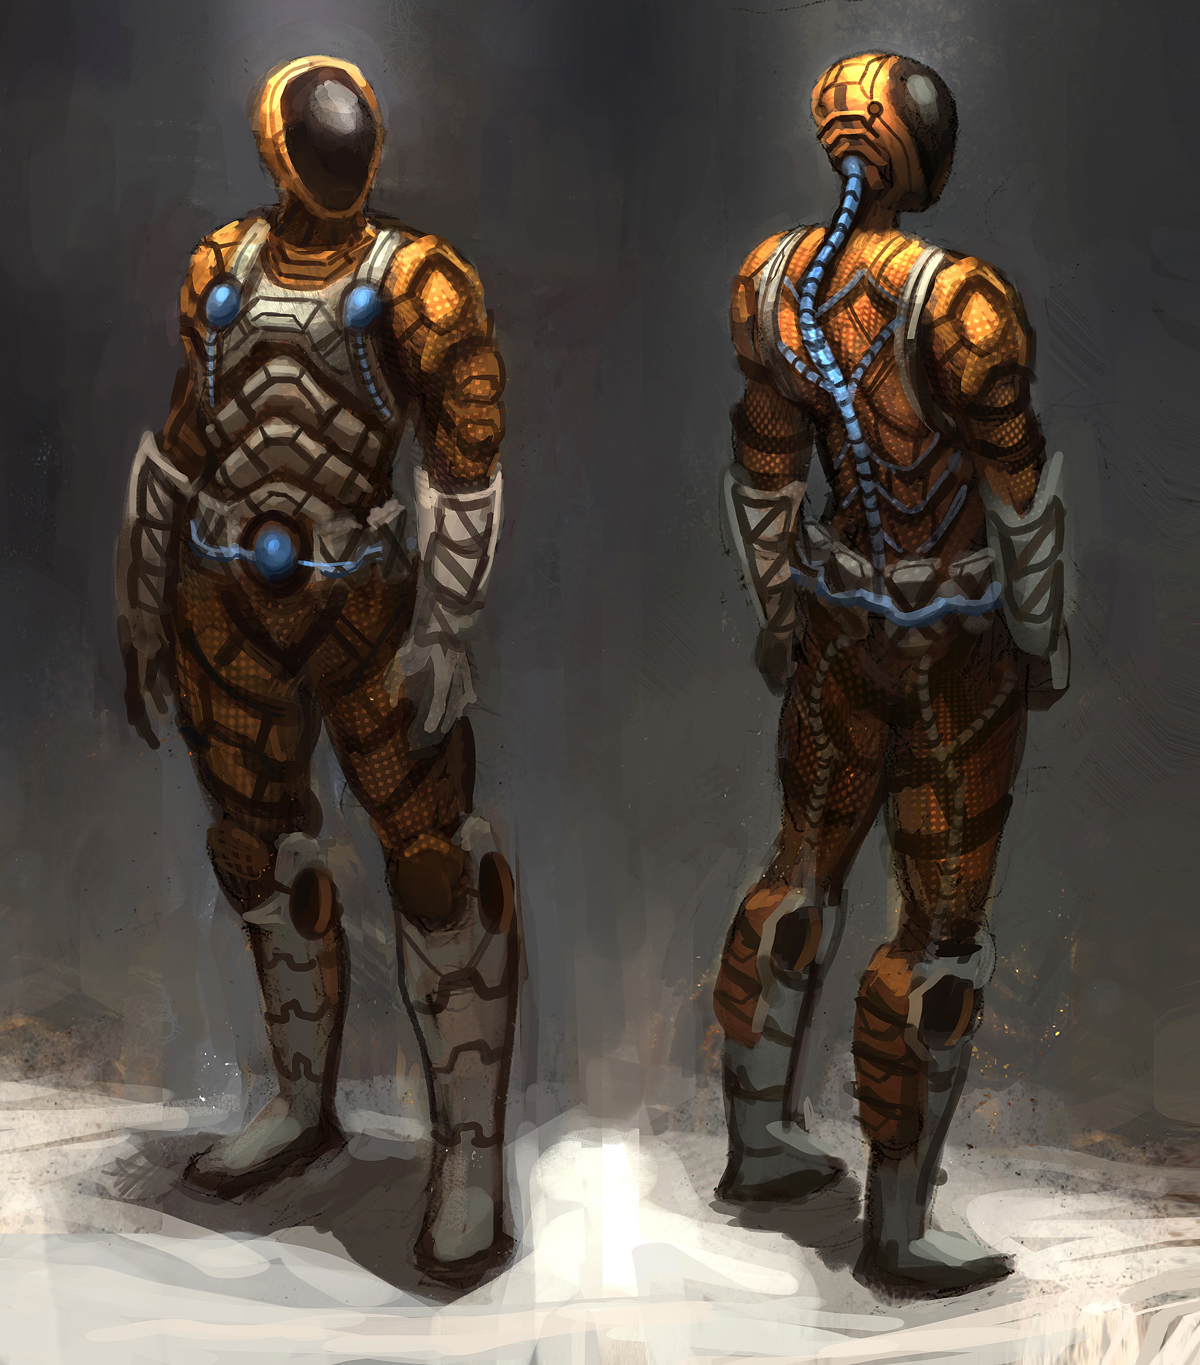 Space Mining Suit by e-mendoza